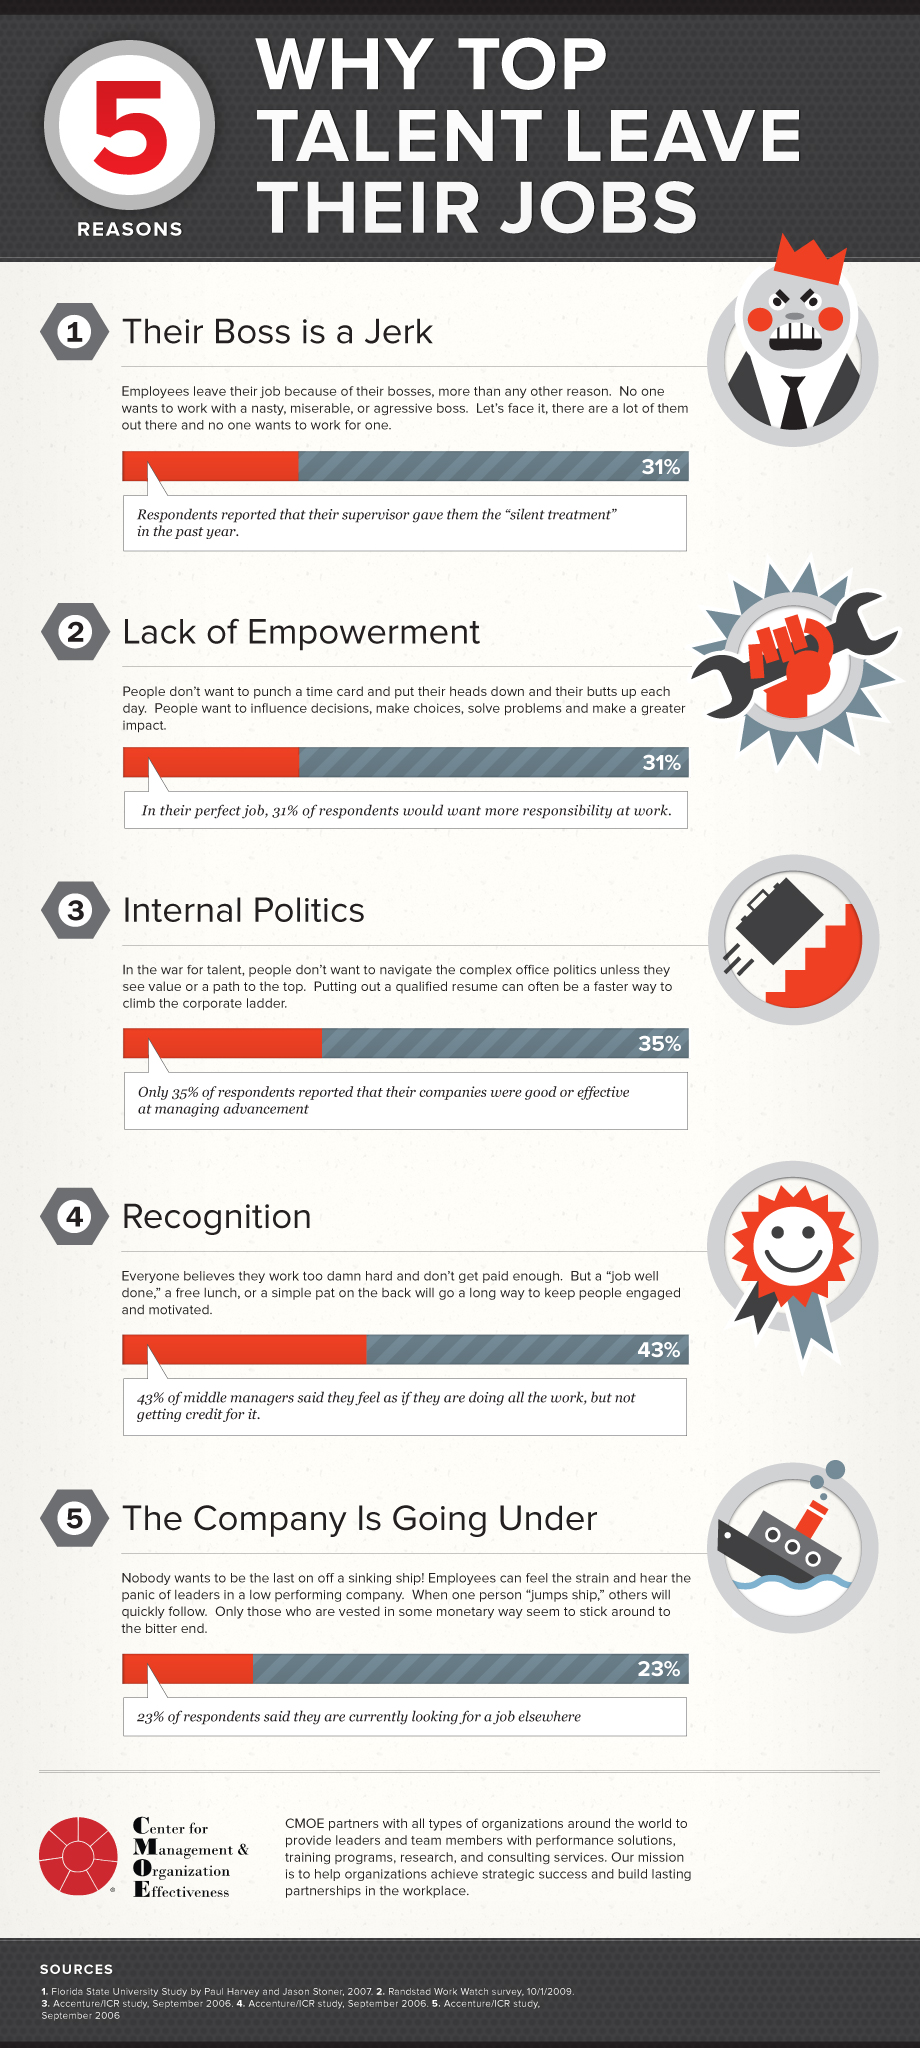 5 Reasons Why Top Talent Leave Their Jobs, An Infographic